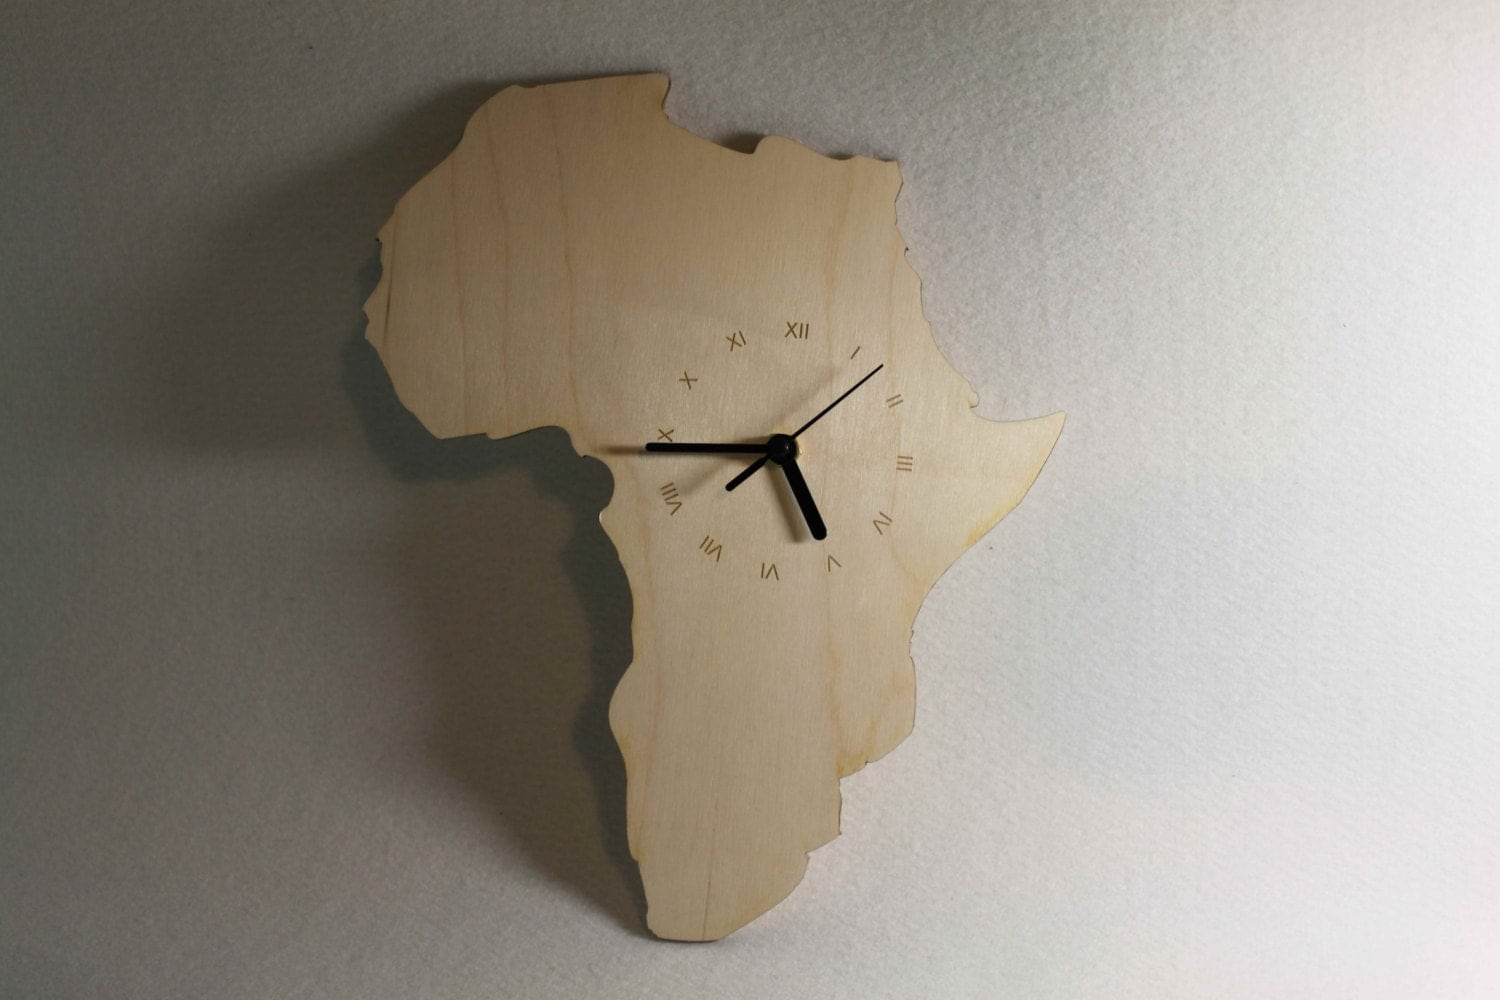 African wall clock choice image home wall decoration ideas africa wooden clock pictures to pin on pinterest thepinsta african wall clock etsy 340x270 custom amipublicfo amipublicfo Images